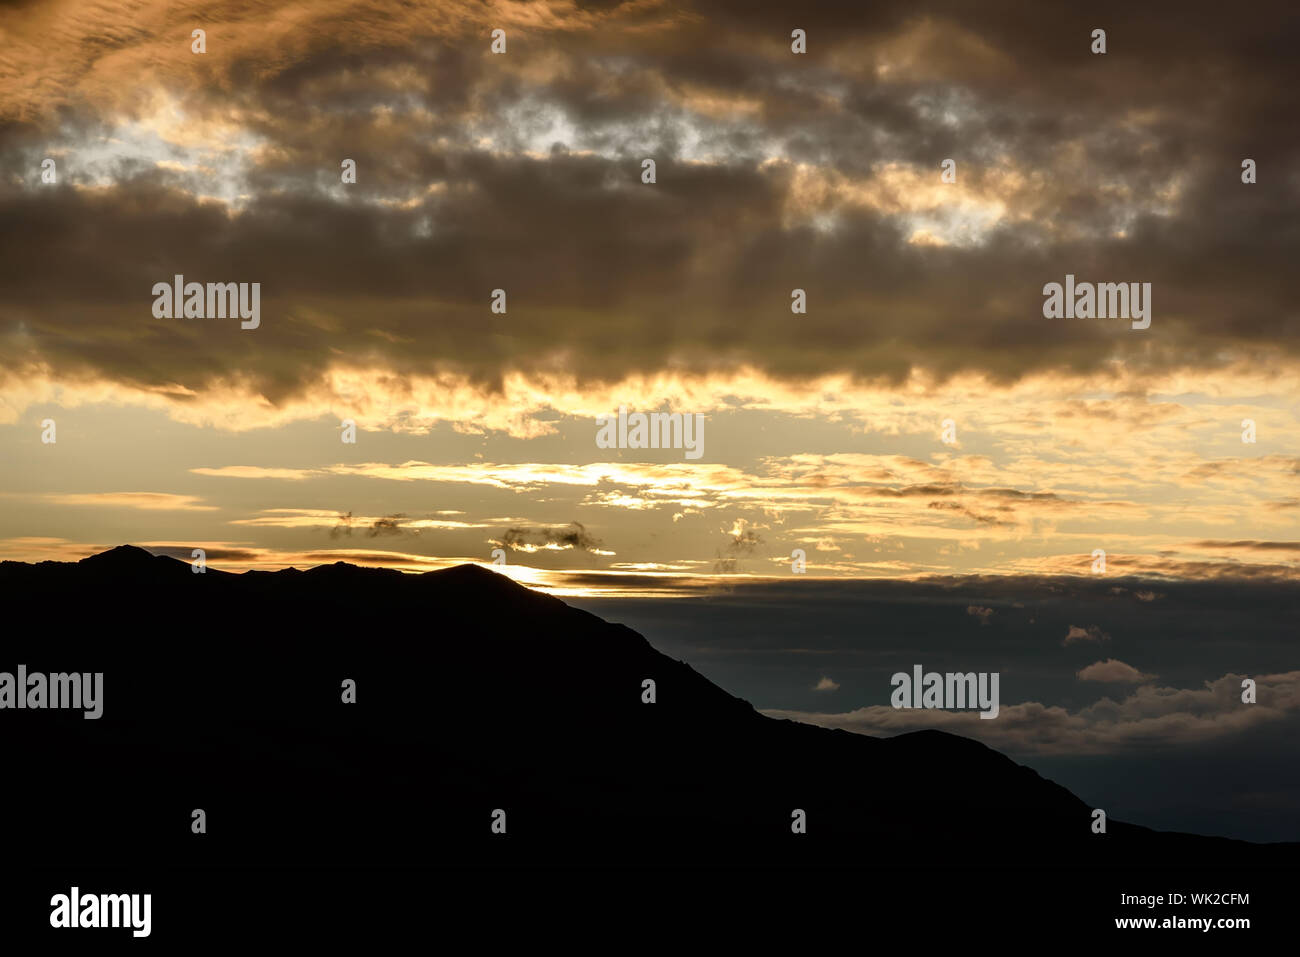 Amazing golden sunrise with the contours of the mountains in the first rays of sunlight against the backdrop of beautiful illuminated clouds in the sk - Stock Photo